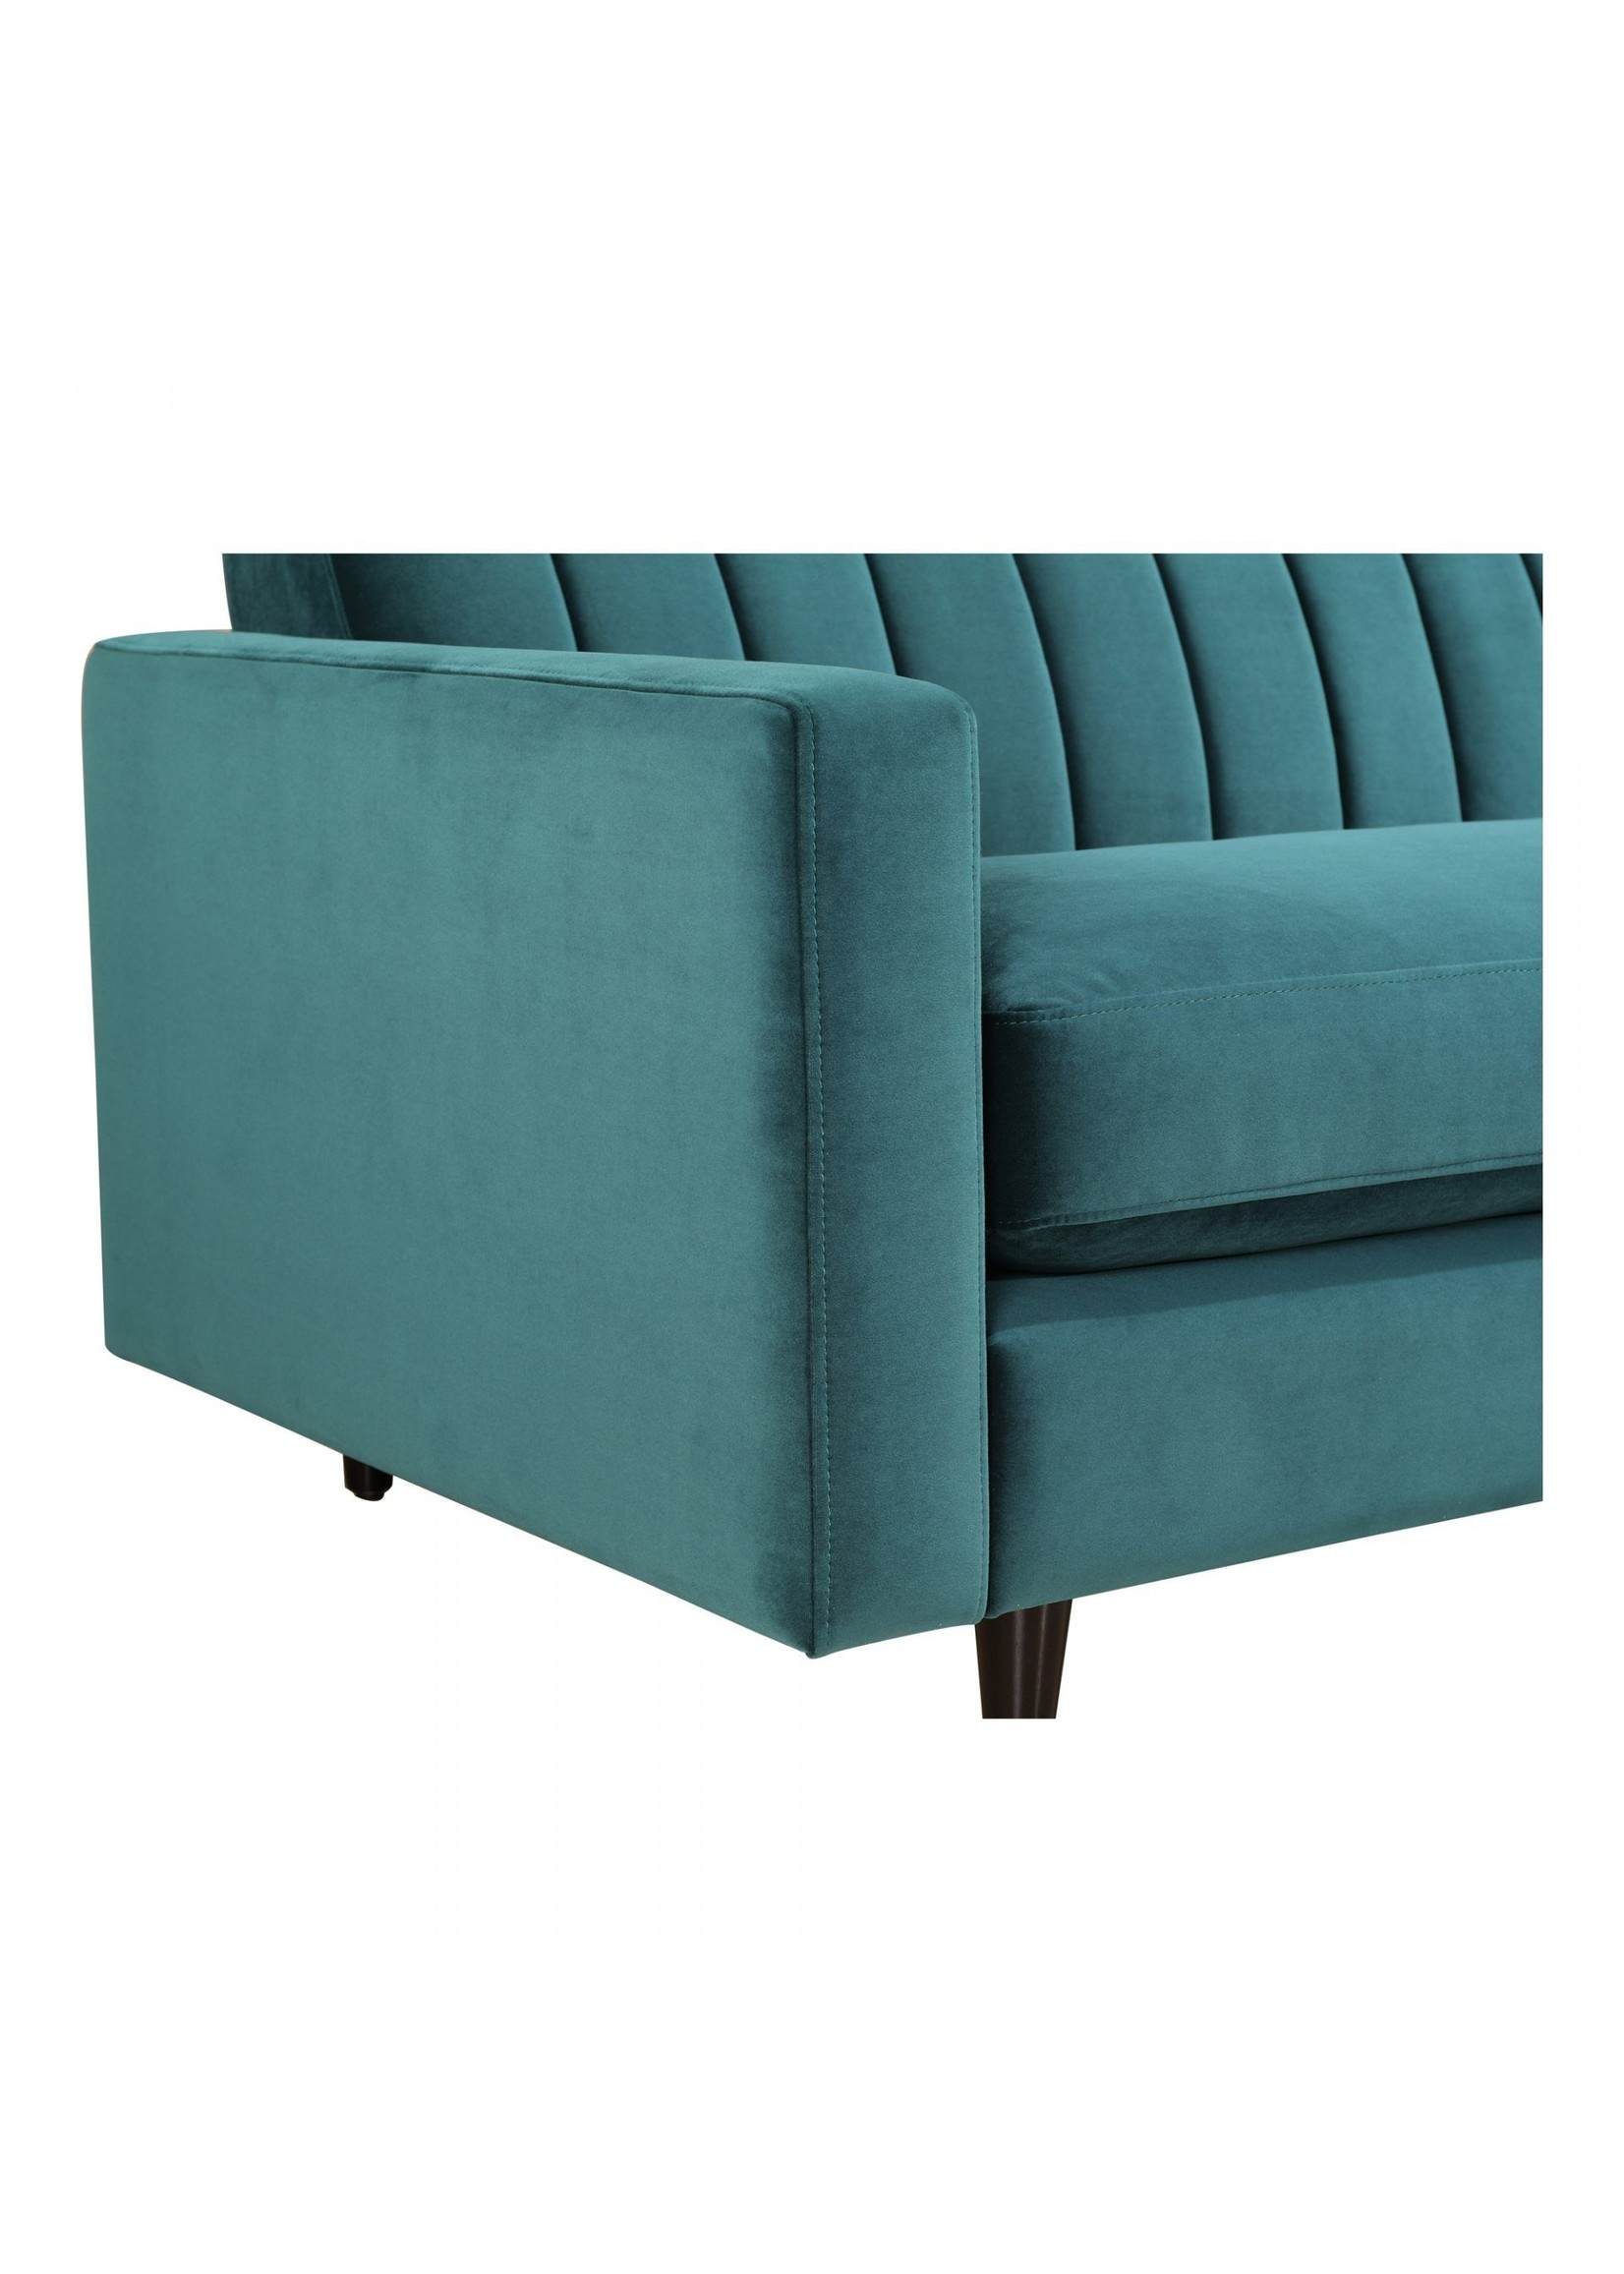 Moes Home Collection Primavera Sofa Green by MOES